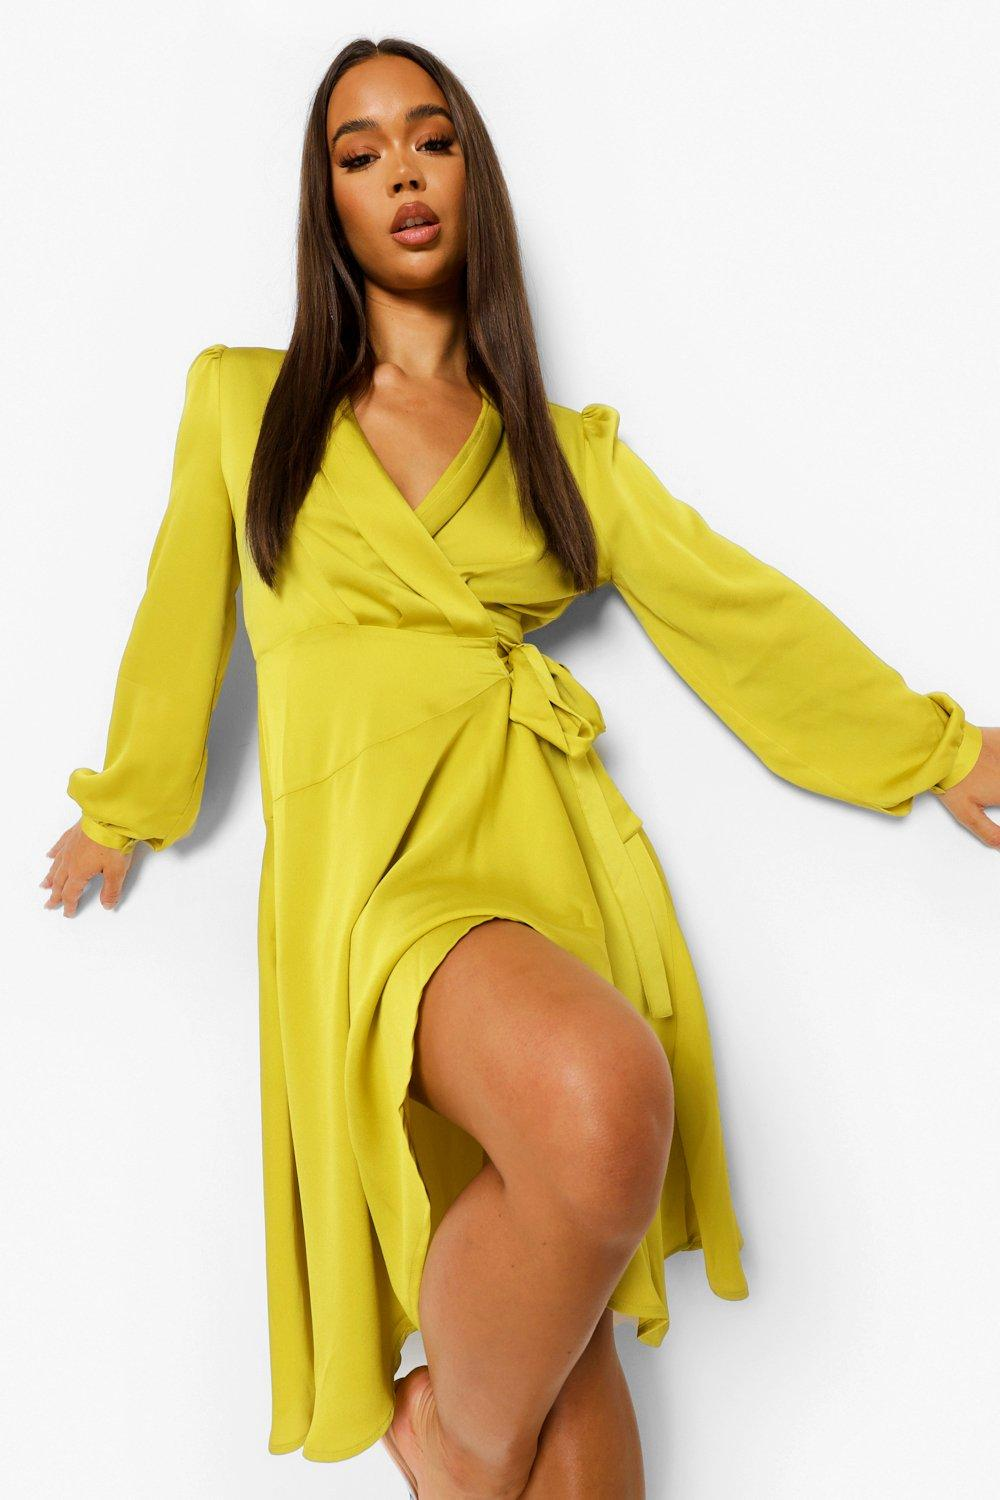 70s Disco Fashion: Disco Clothes, Outfits for Girls Womens Wrap Over Ruffle Hem Belted Midi Dress - Yellow - 4 $64.00 AT vintagedancer.com